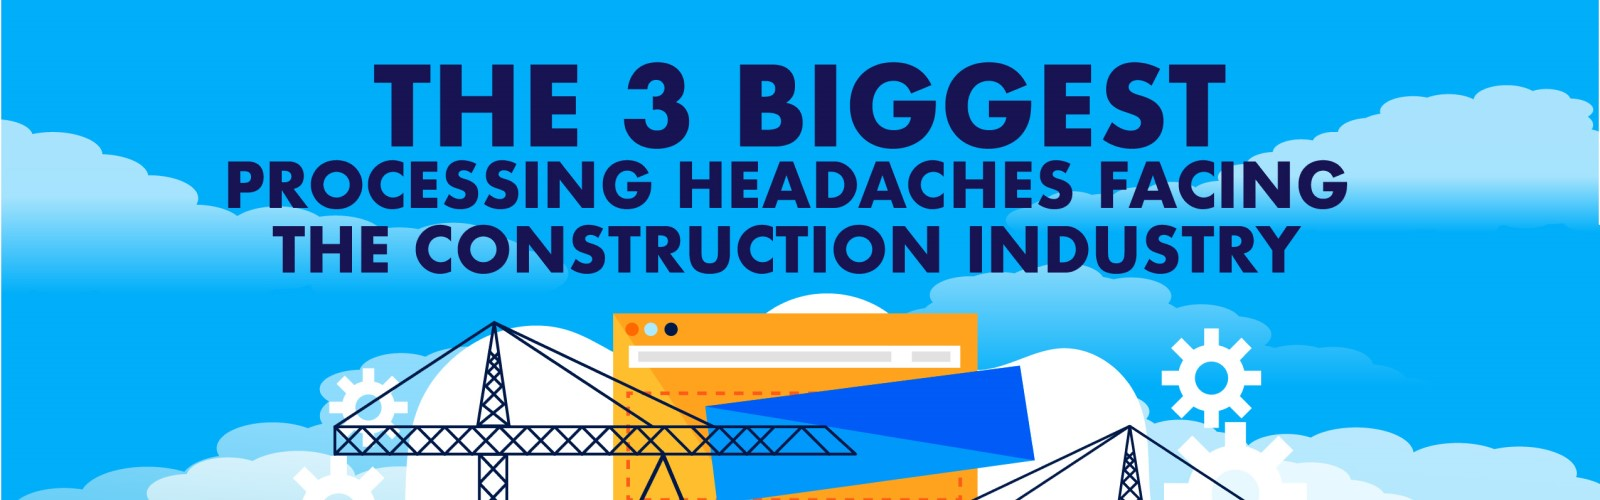 The 3 Biggest Processing Headaches in the Construction Industry (Infographic) - Banner